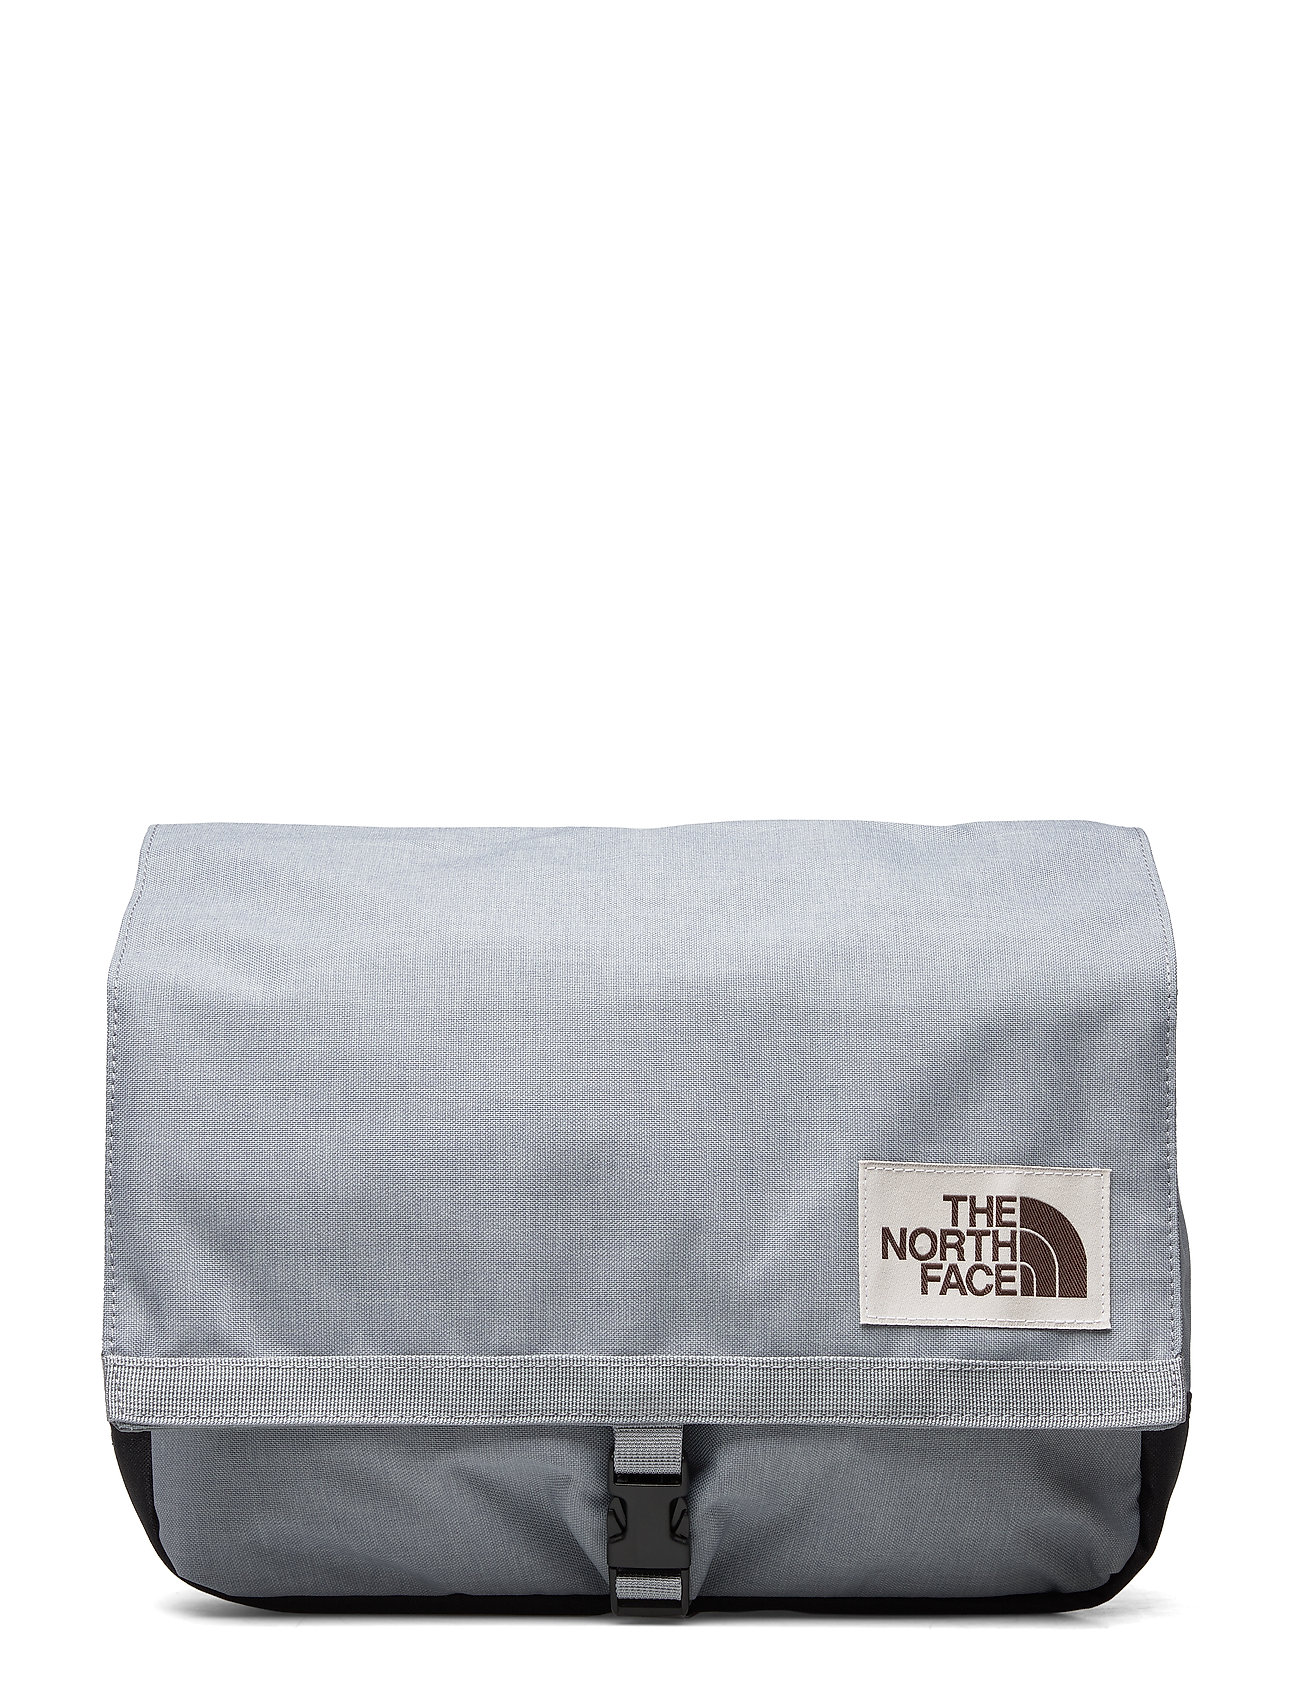 The North Face BERKELEY SATCHEL - MDGRYLTH/TNFBLH